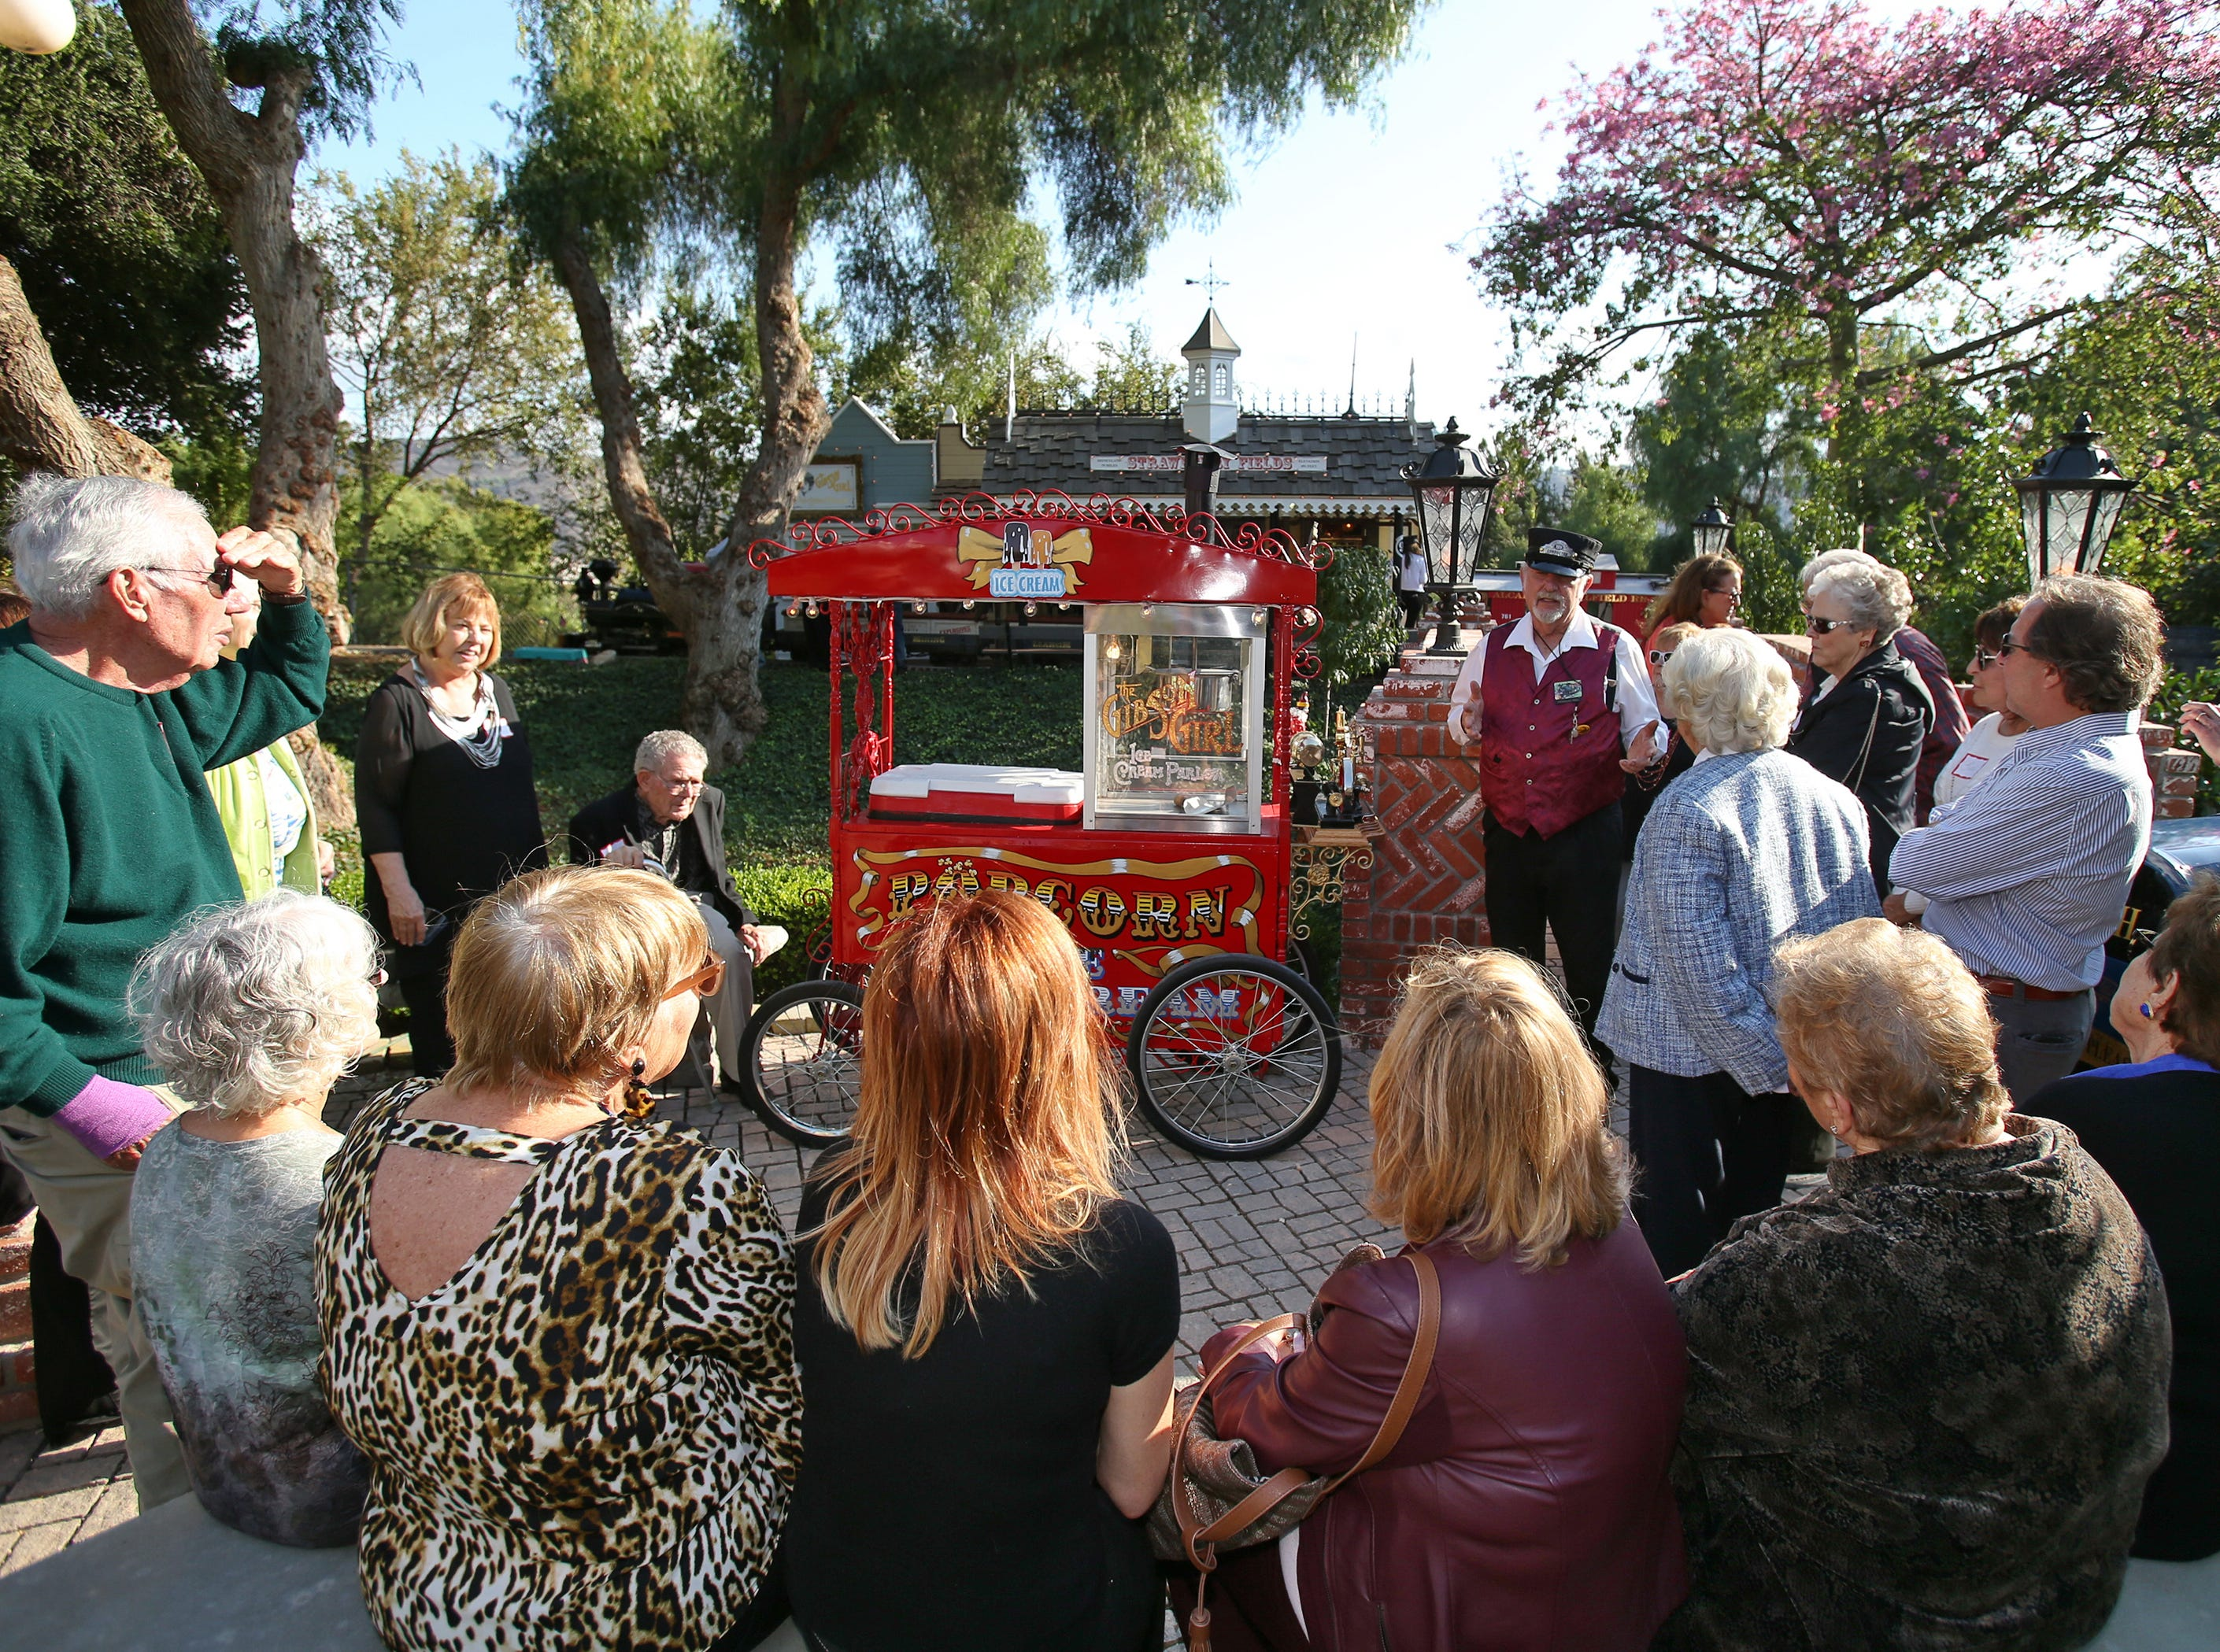 Mike Newlon gives a brief history of the popcorn cart that he purchased from the Playboy Manson as guests from the California Museum of Art Thousand Oaks head toward the train station on the property. A steam train and a replica of Disneyland's Main Street Trolley share the tracks at the Santa Rosa Valley home.